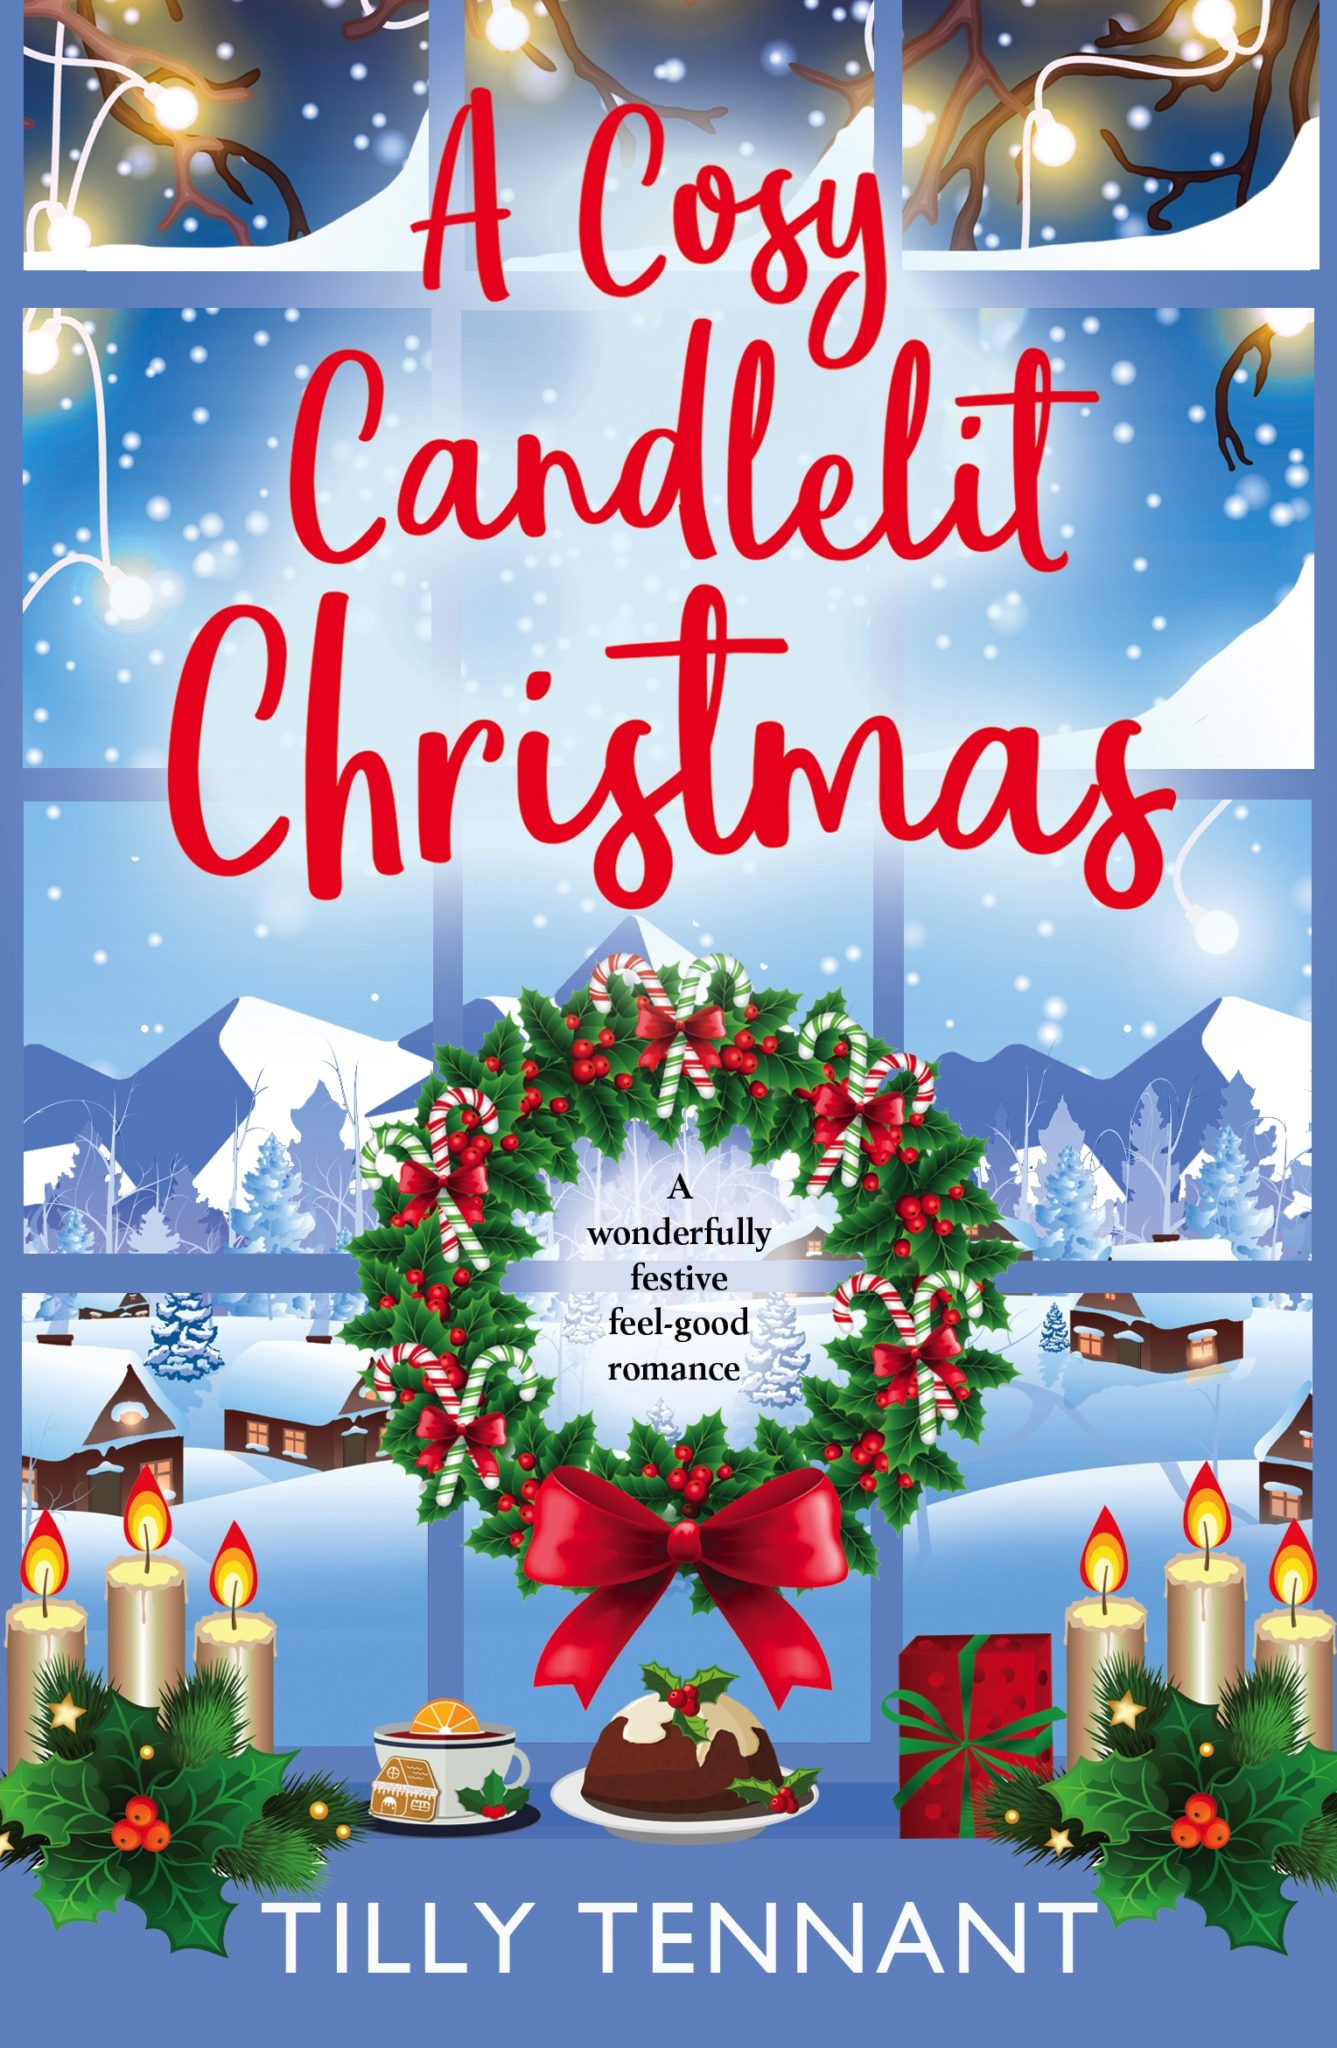 Blog Tour Review: A Cosy Candlelit Christmas